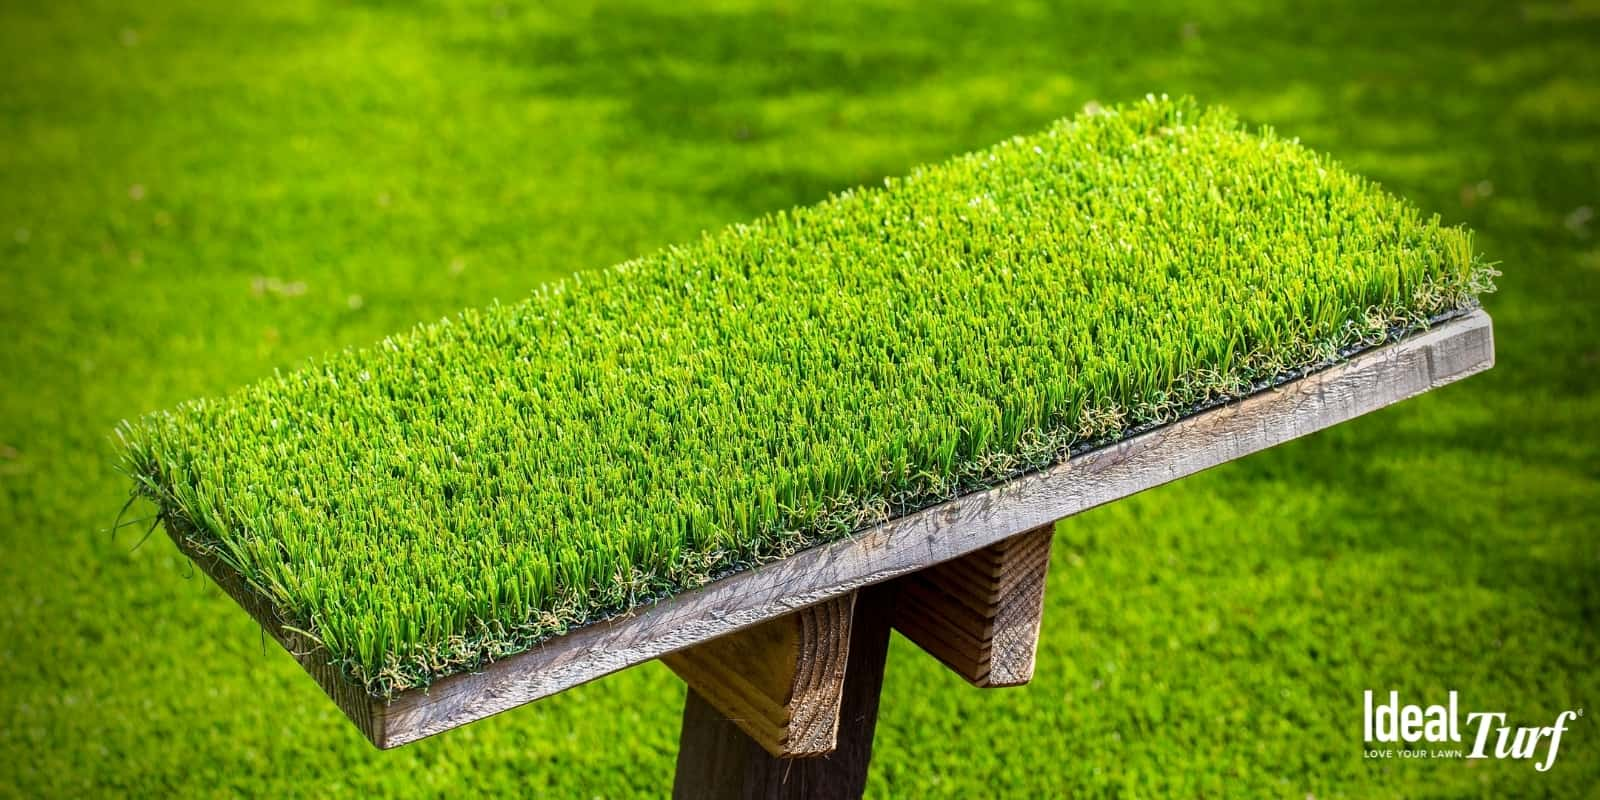 Artificial grass sample on display with artificial grass lawn in background